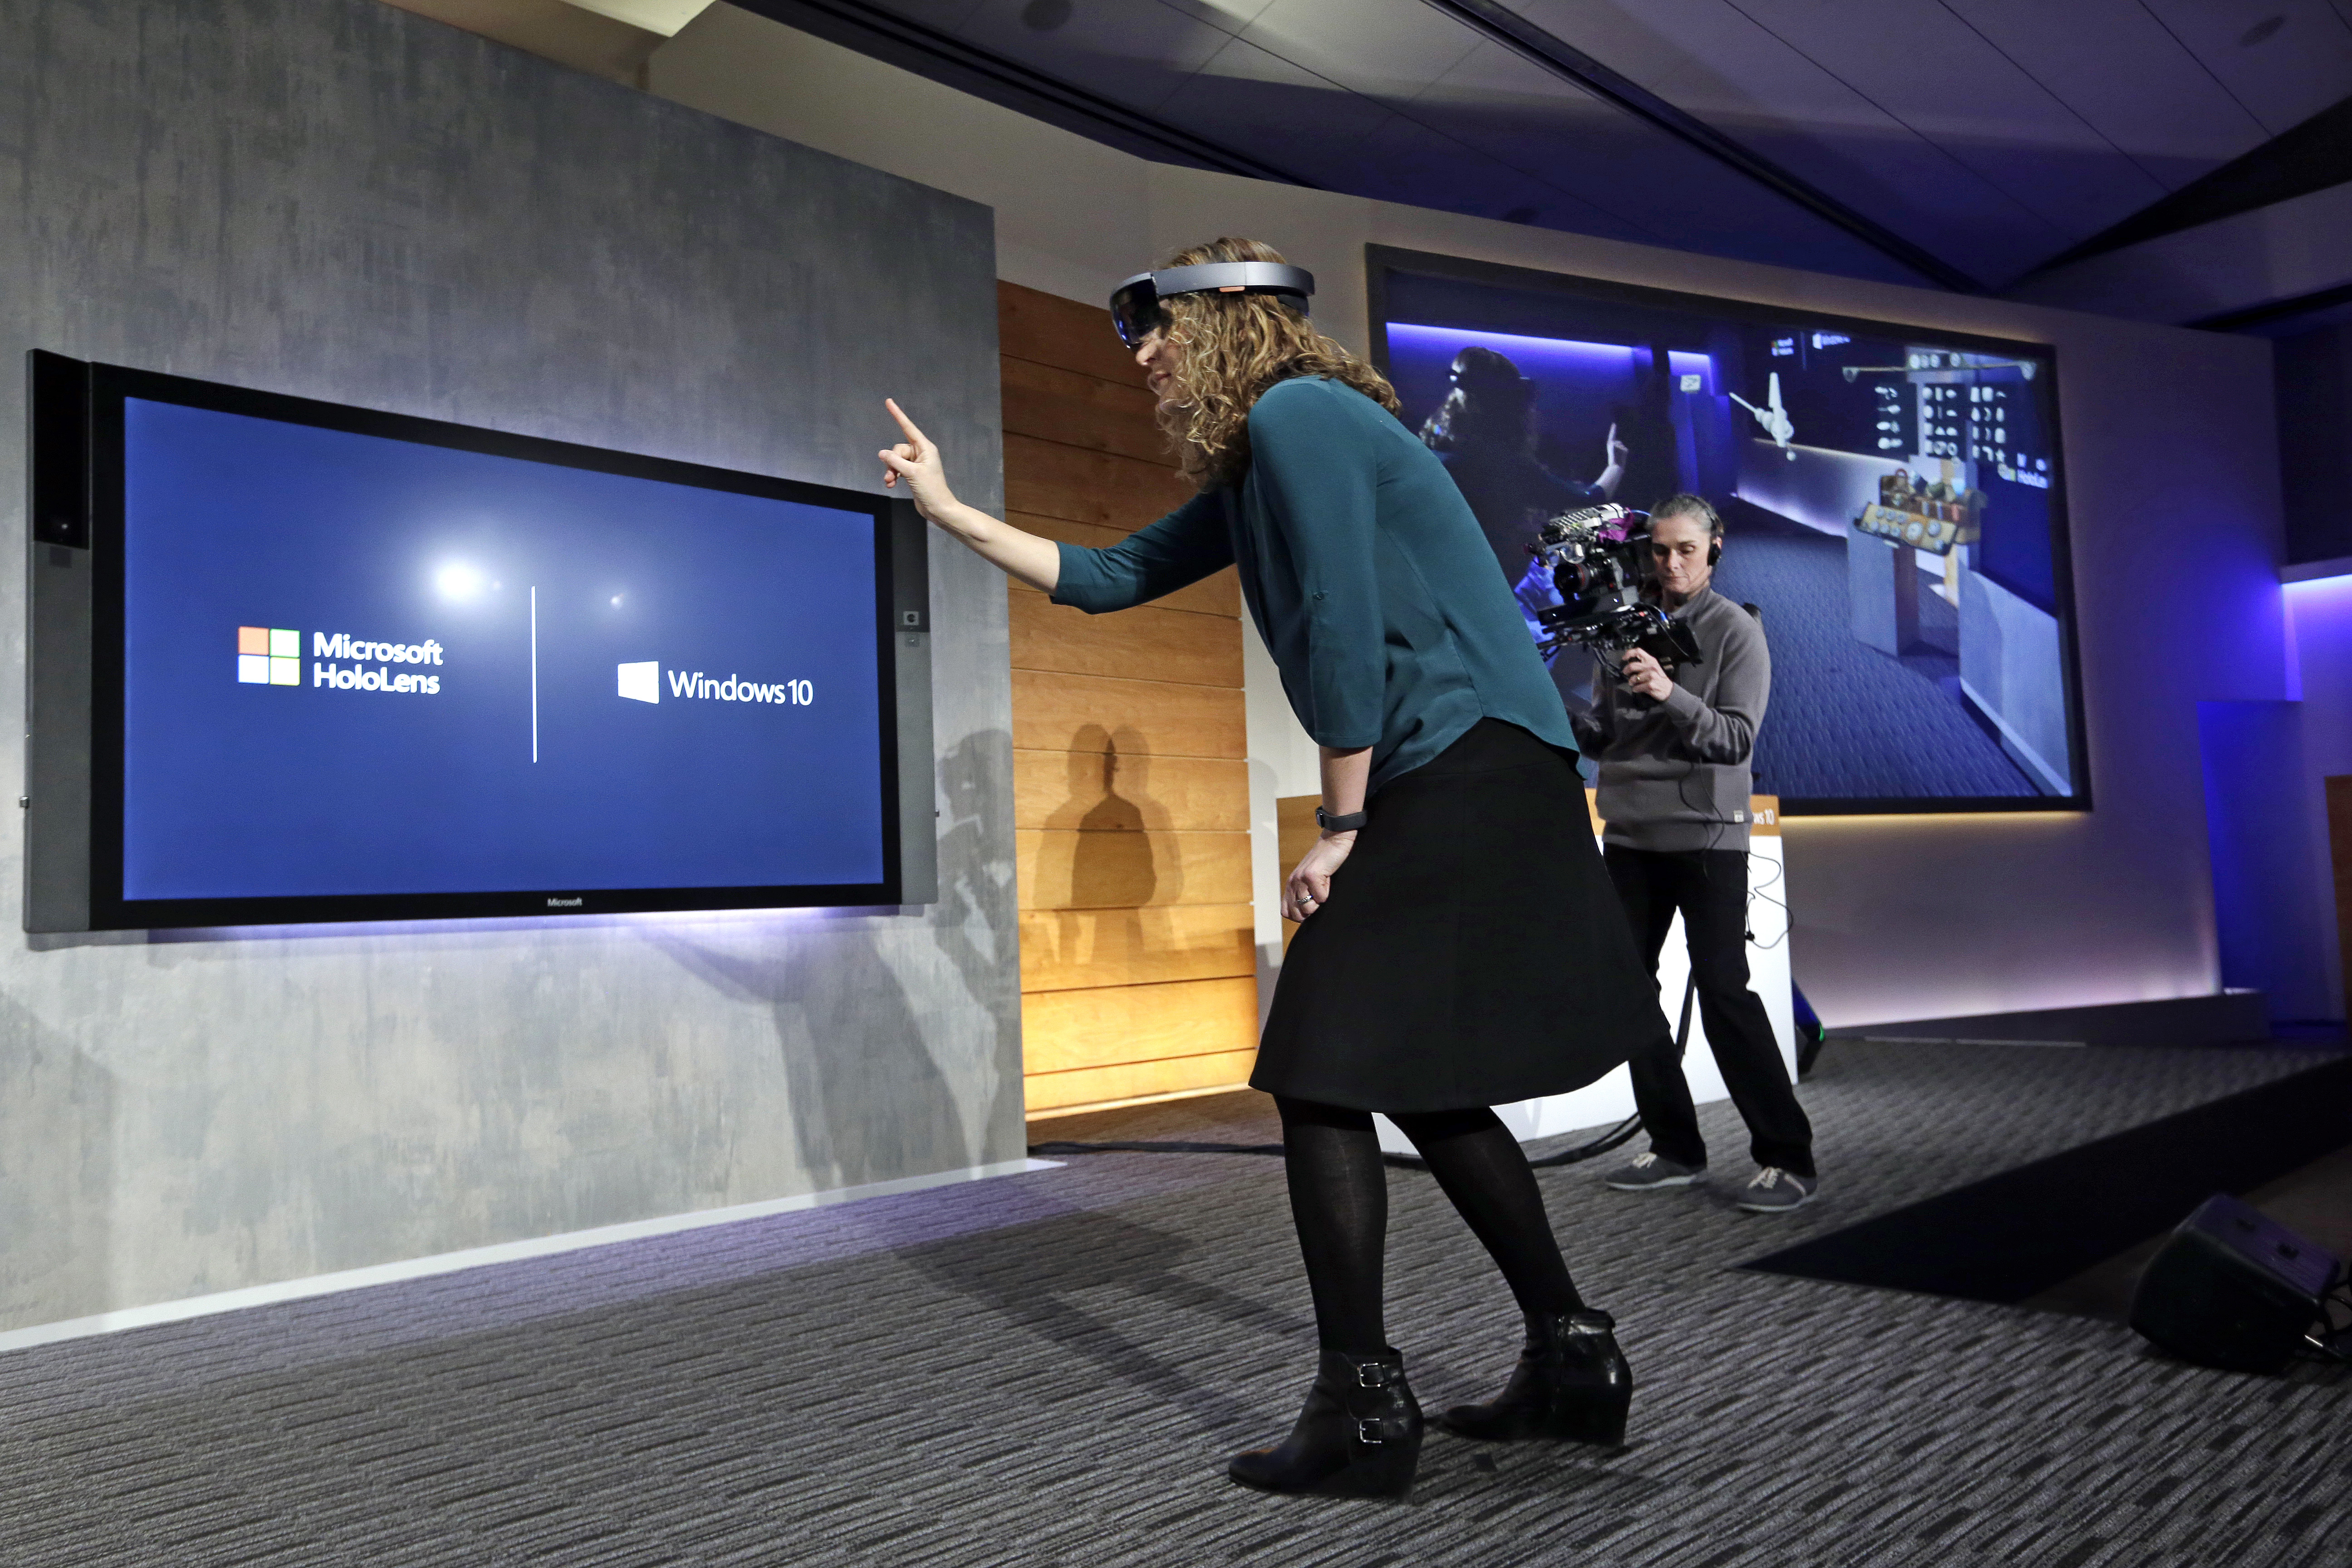 How To Retrieve Email In Outlook >> Redmond, WA - Microsoft Shows Off Windows 10 And 'HoloLens'